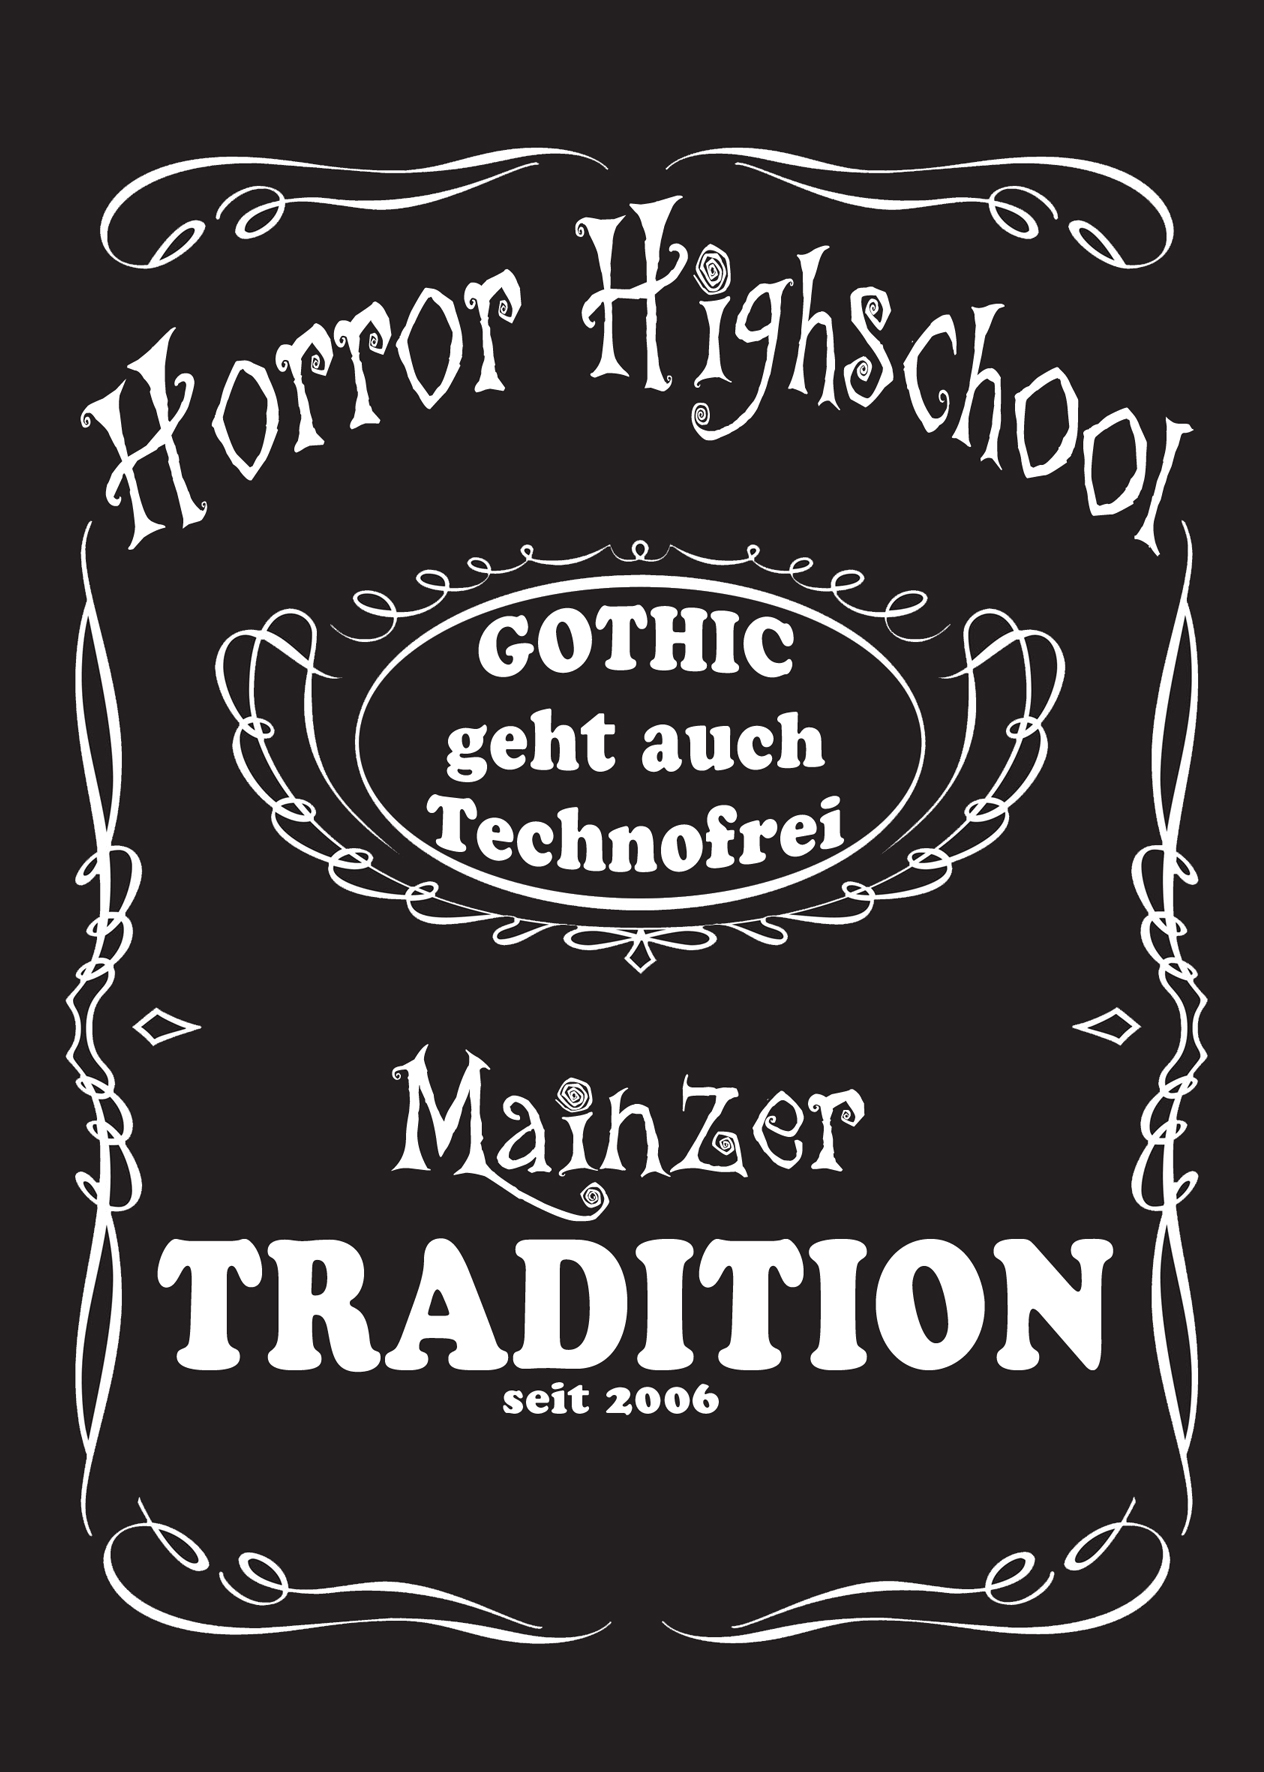 Horror Highschool Mainz seit 2006